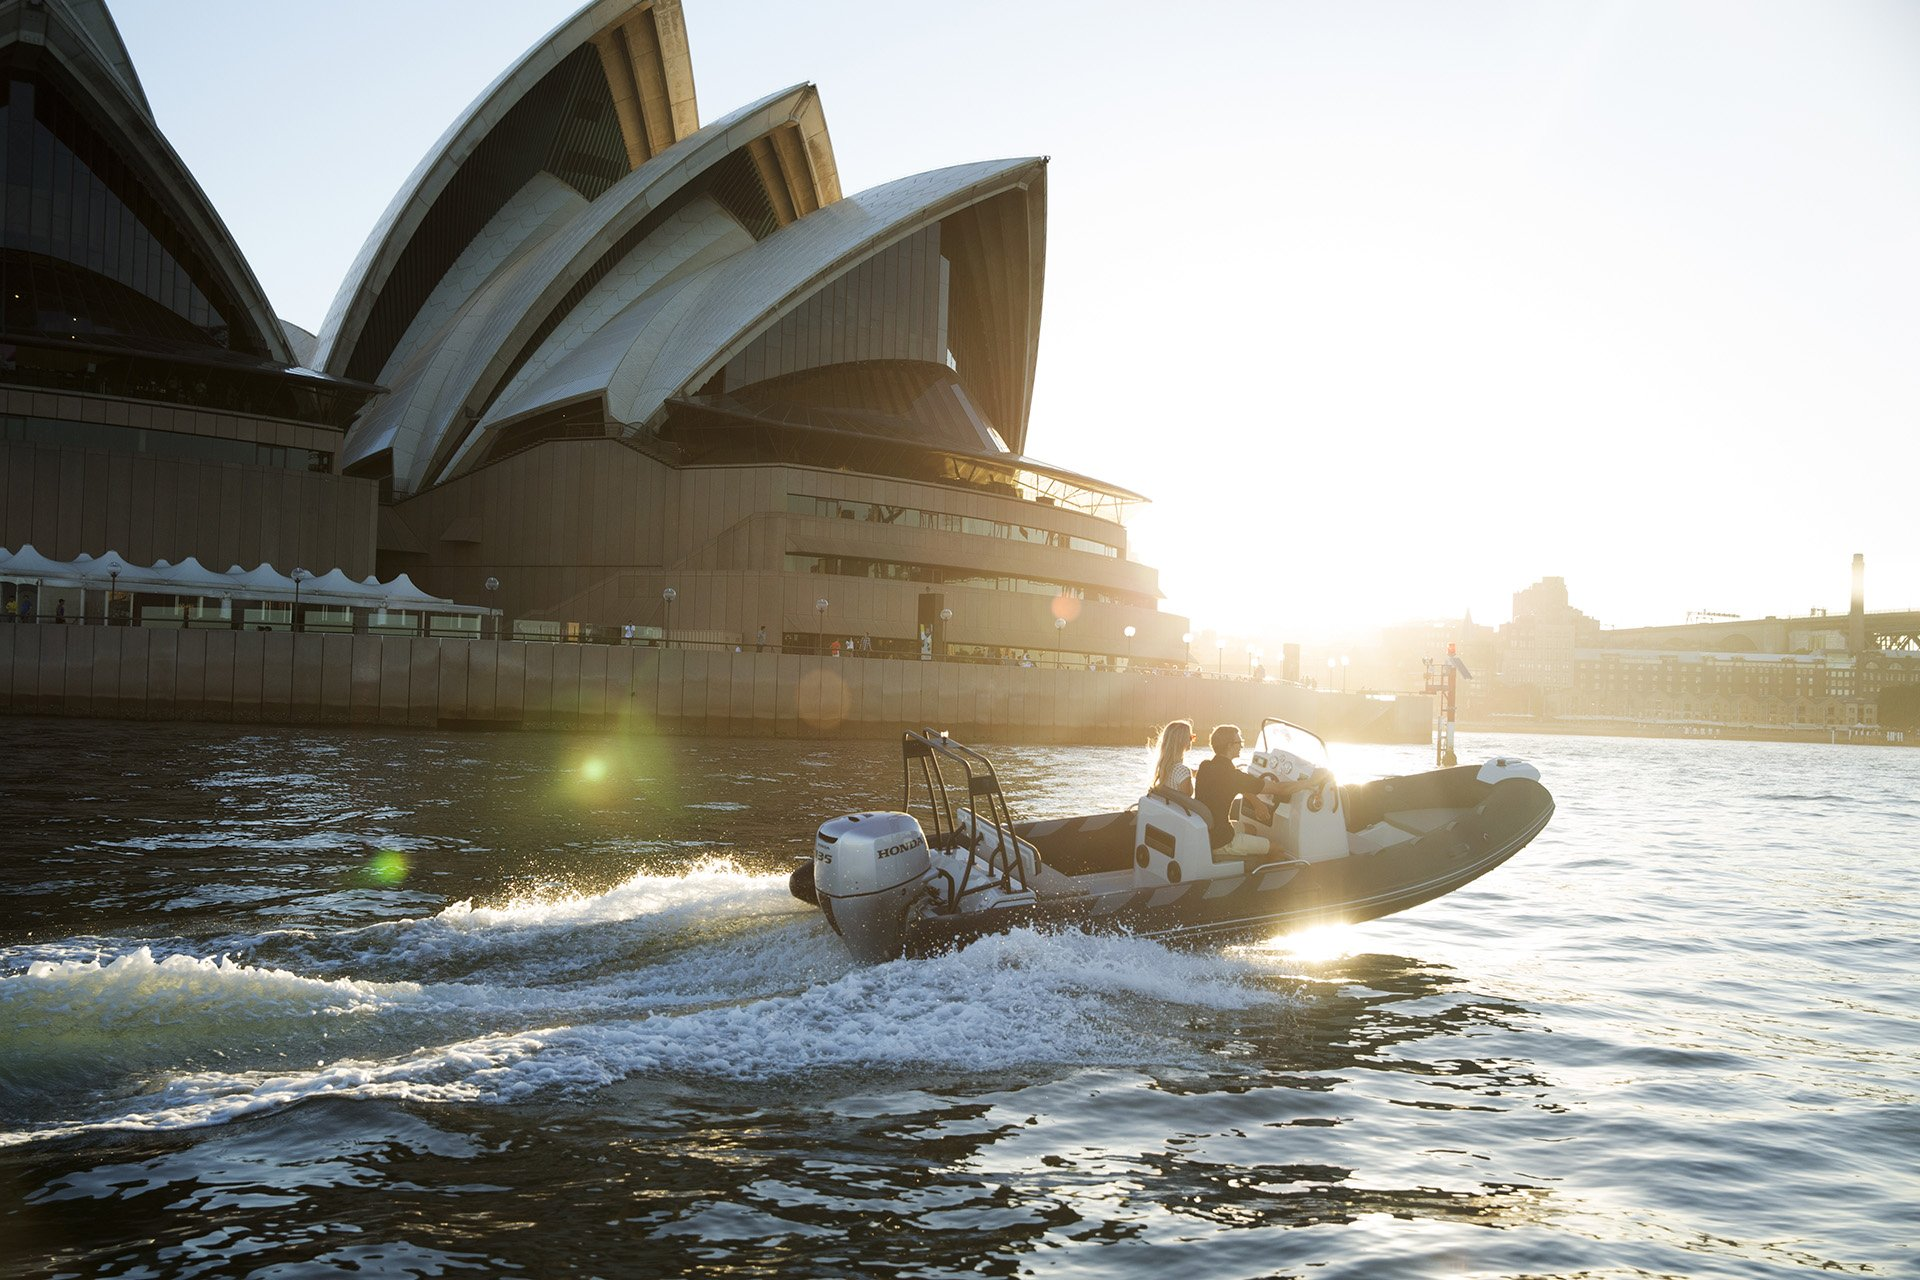 Australian Inflatable Boat